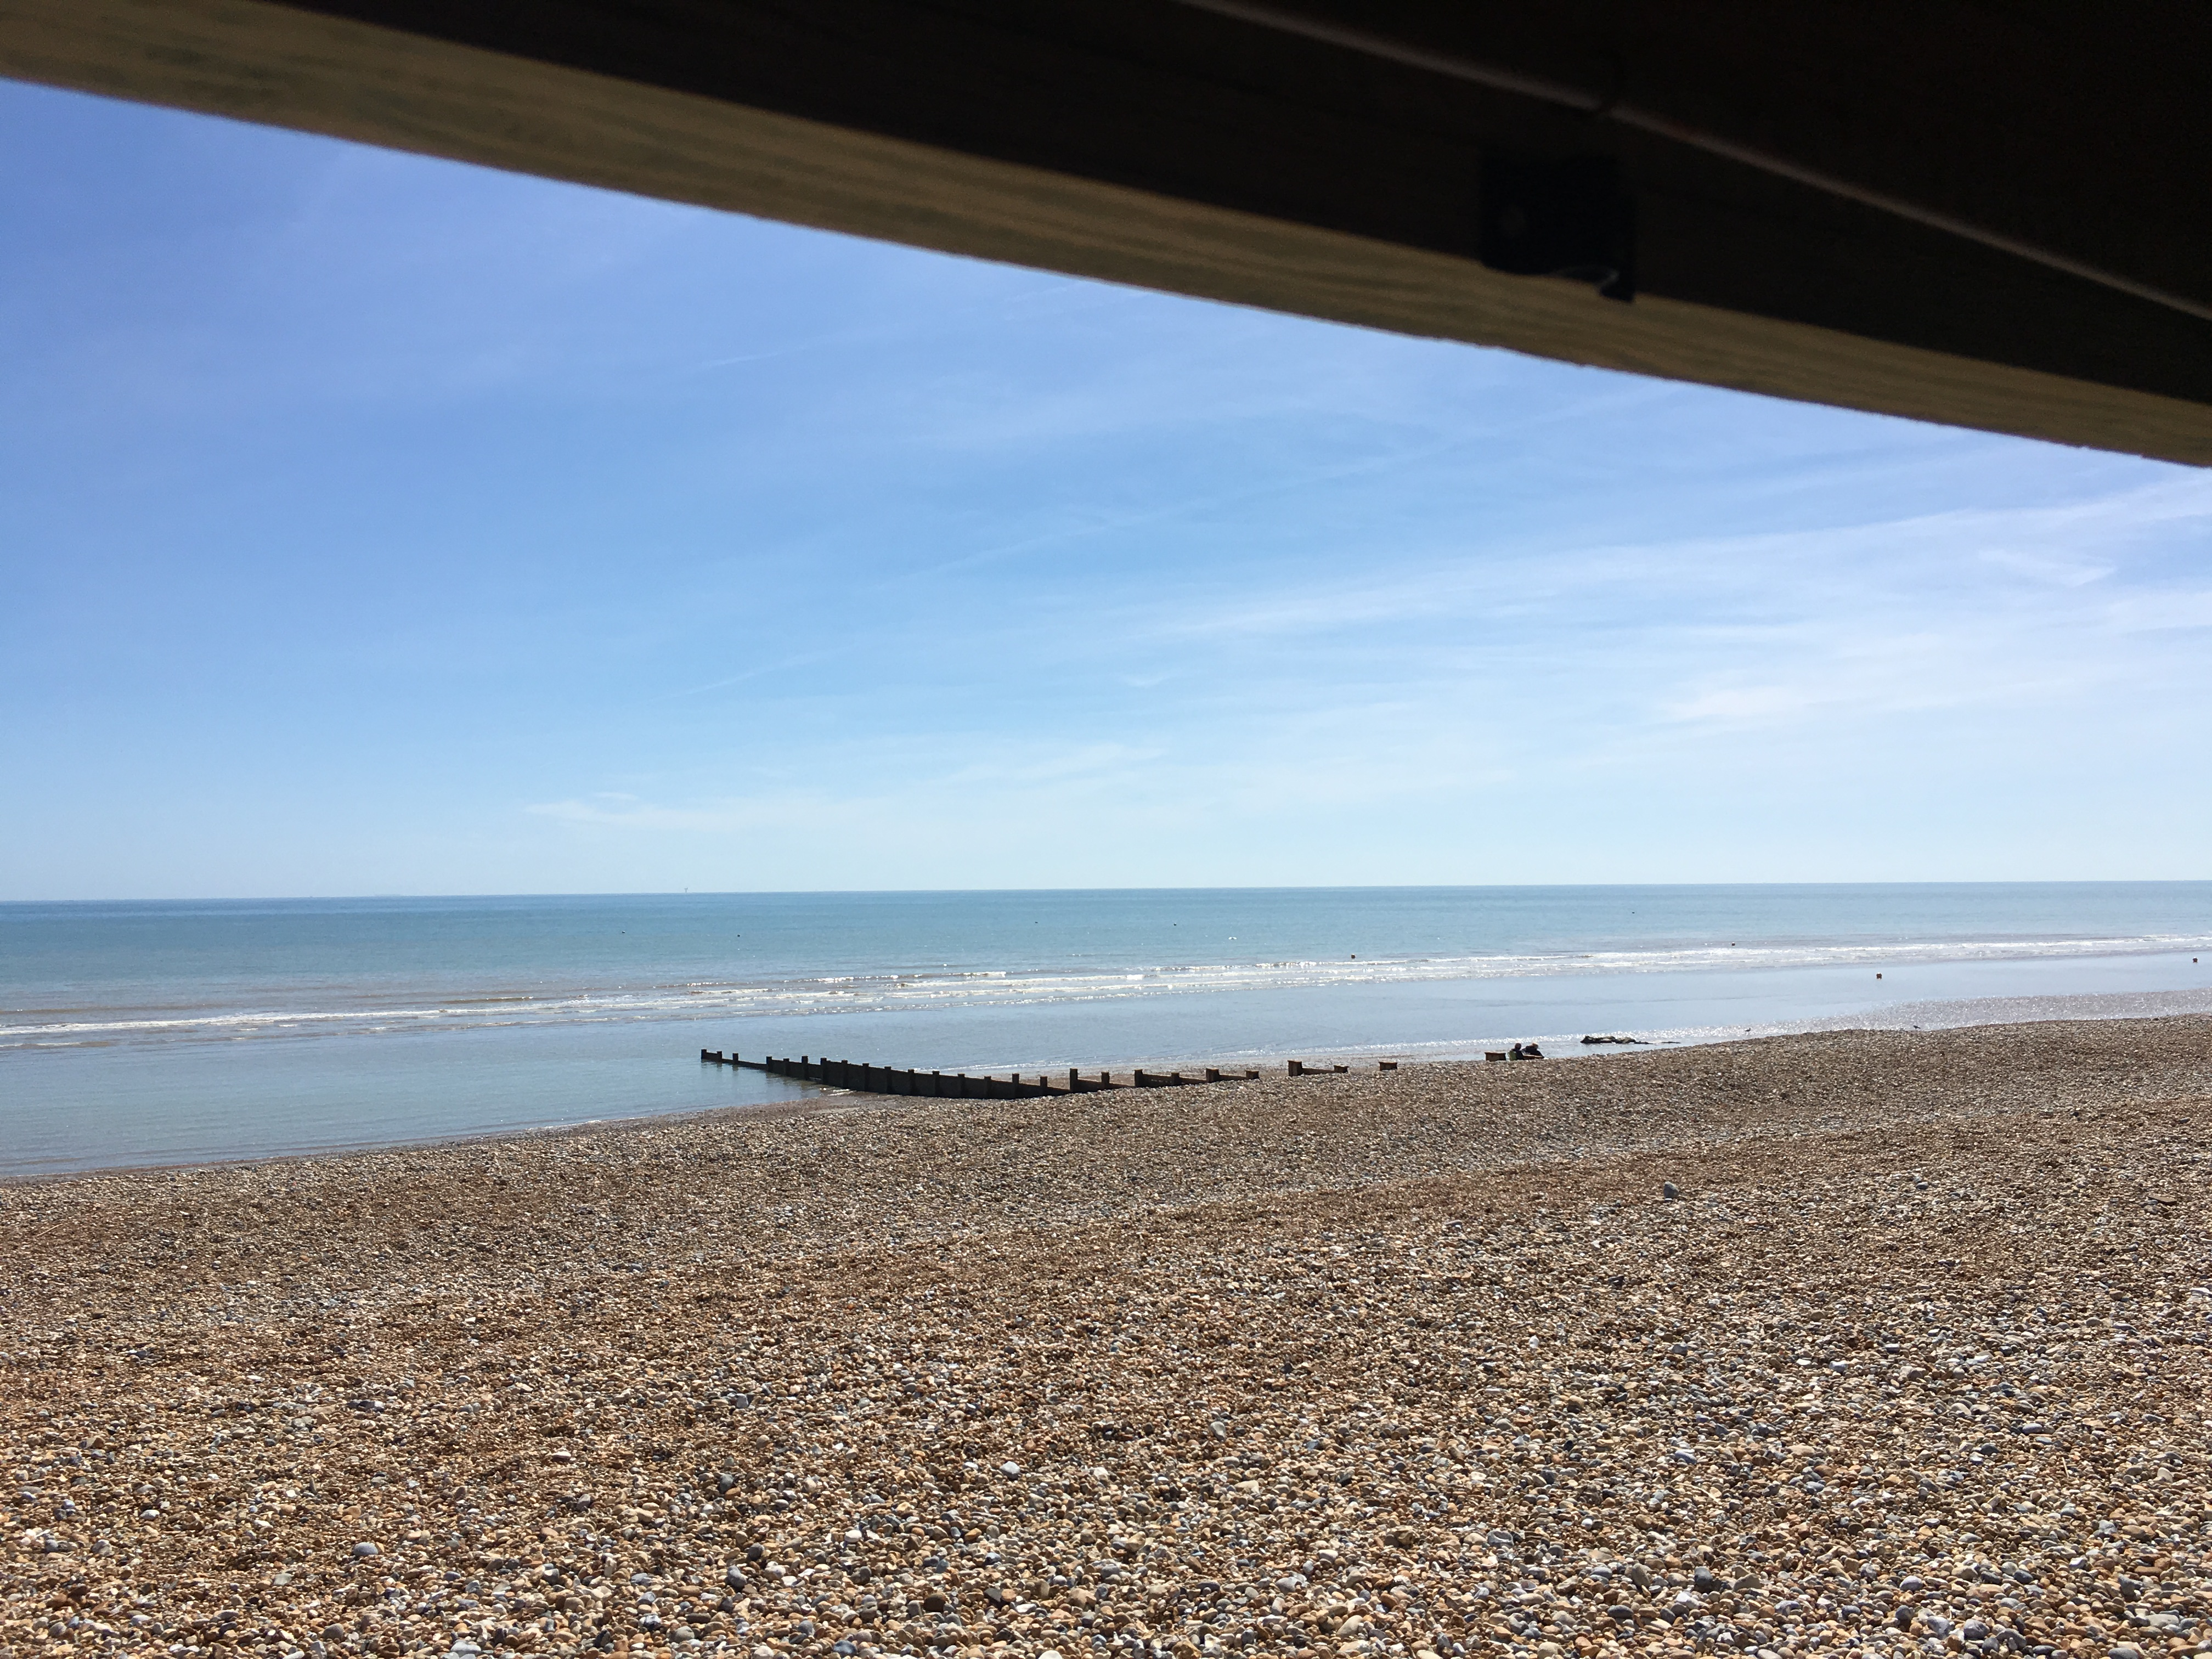 view from beachhutcook's beach hut